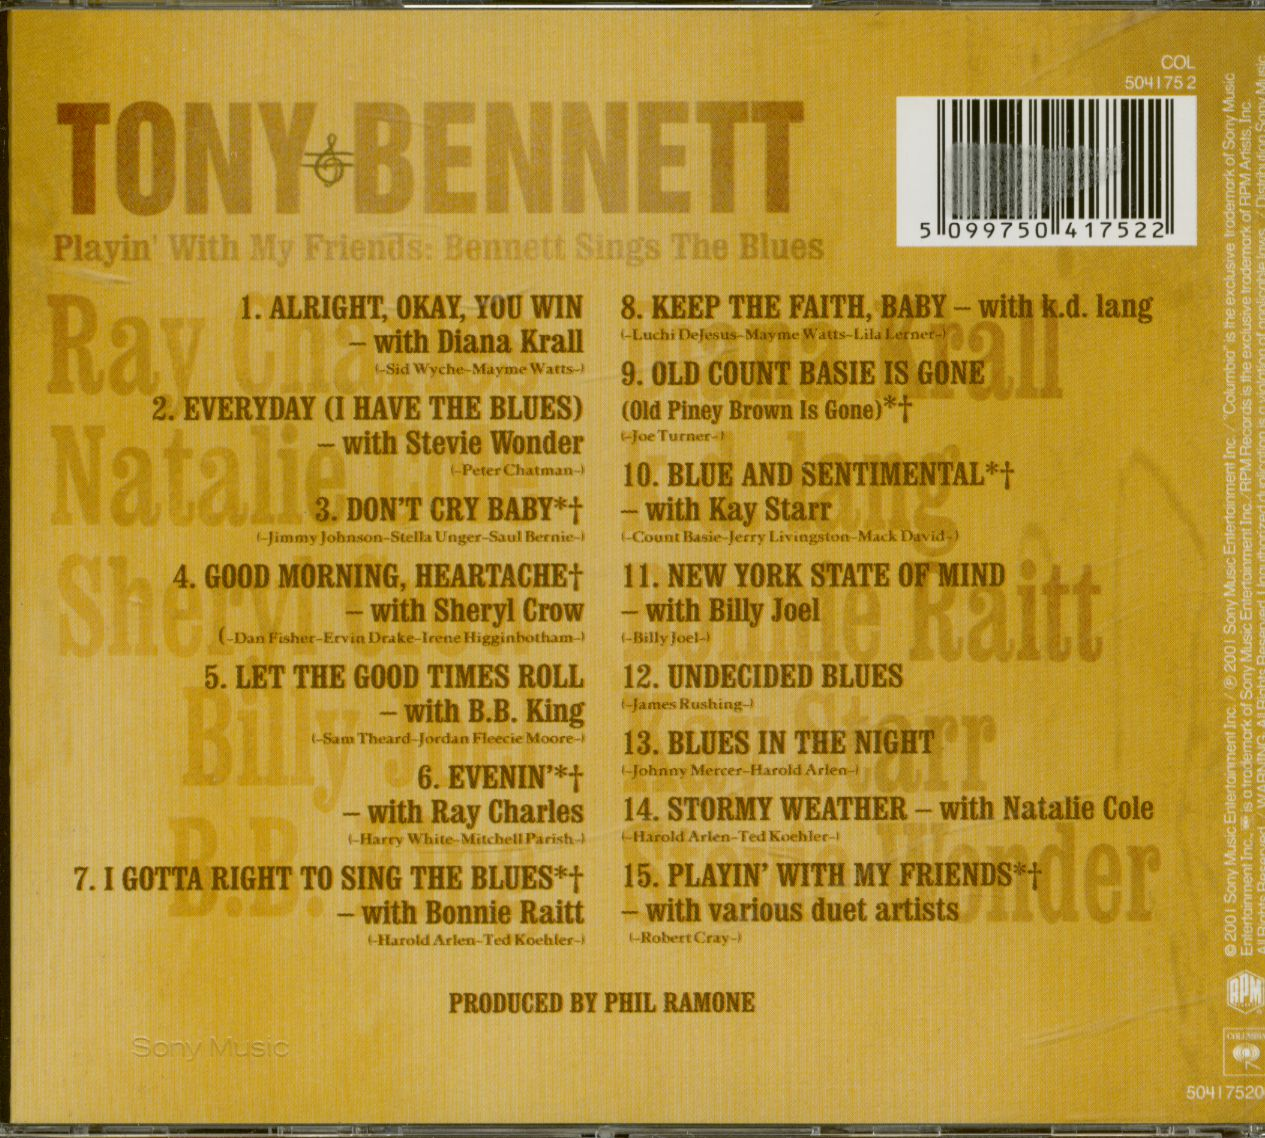 Tony Bennett & Friends CD: Playing With My Friends - Sings The Blues